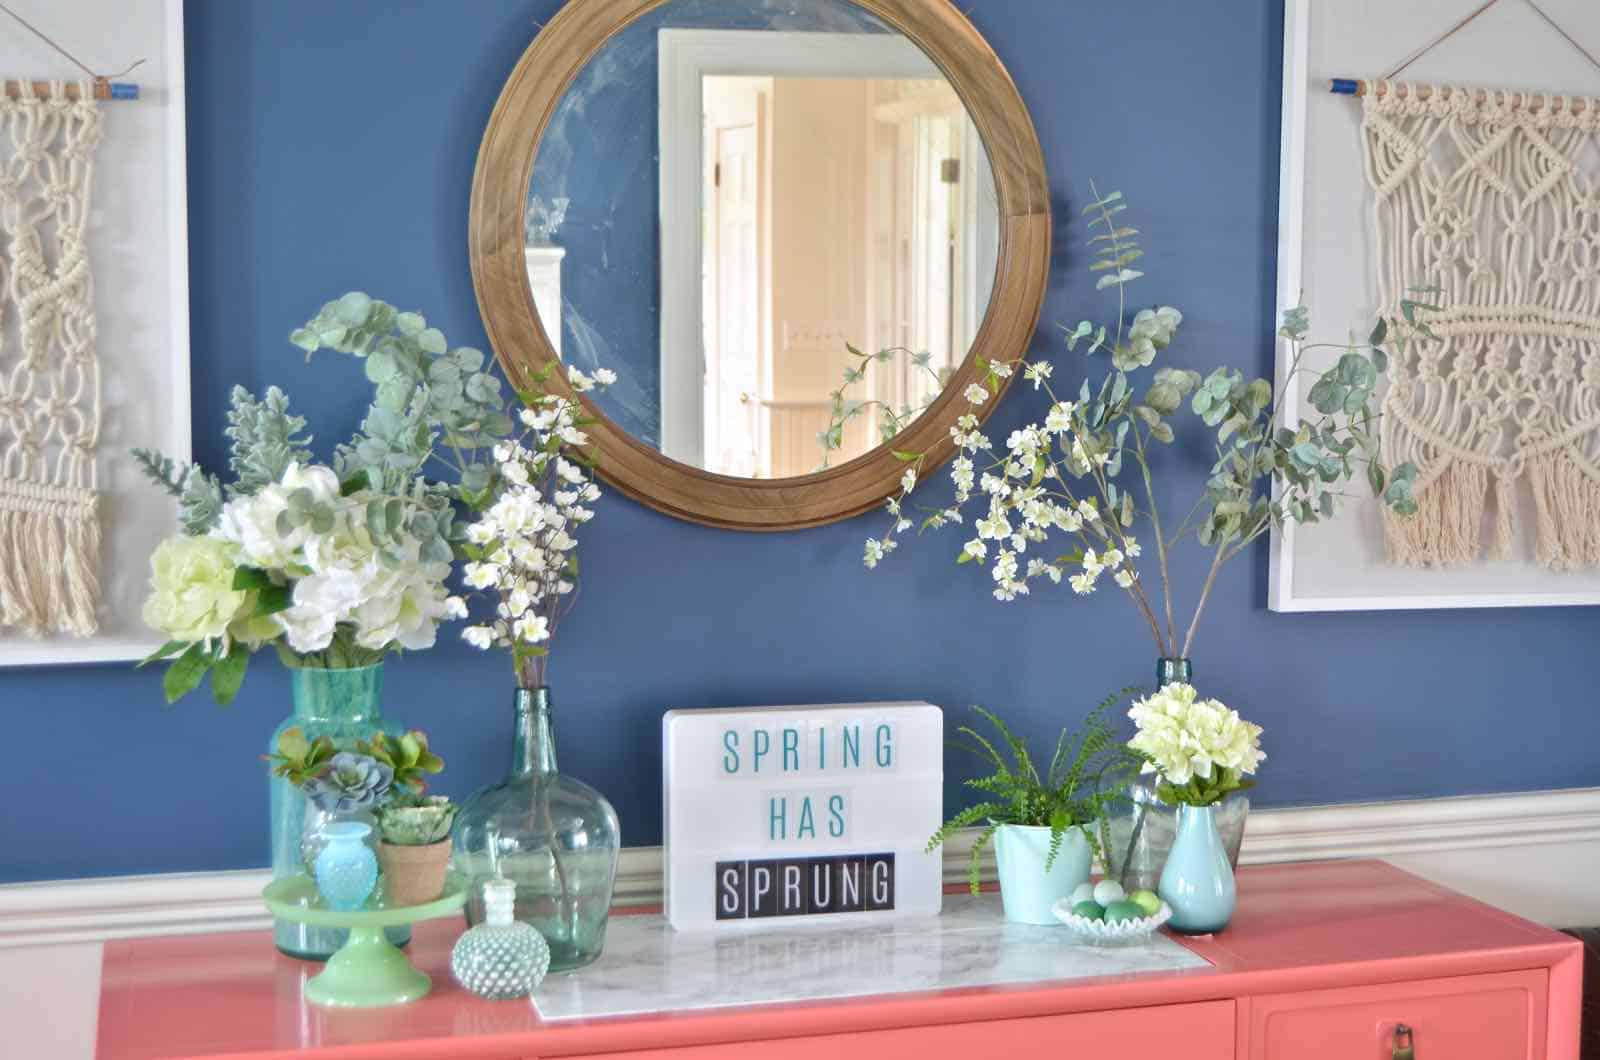 Spring house tour with flowers and decorative accents in blue and green.